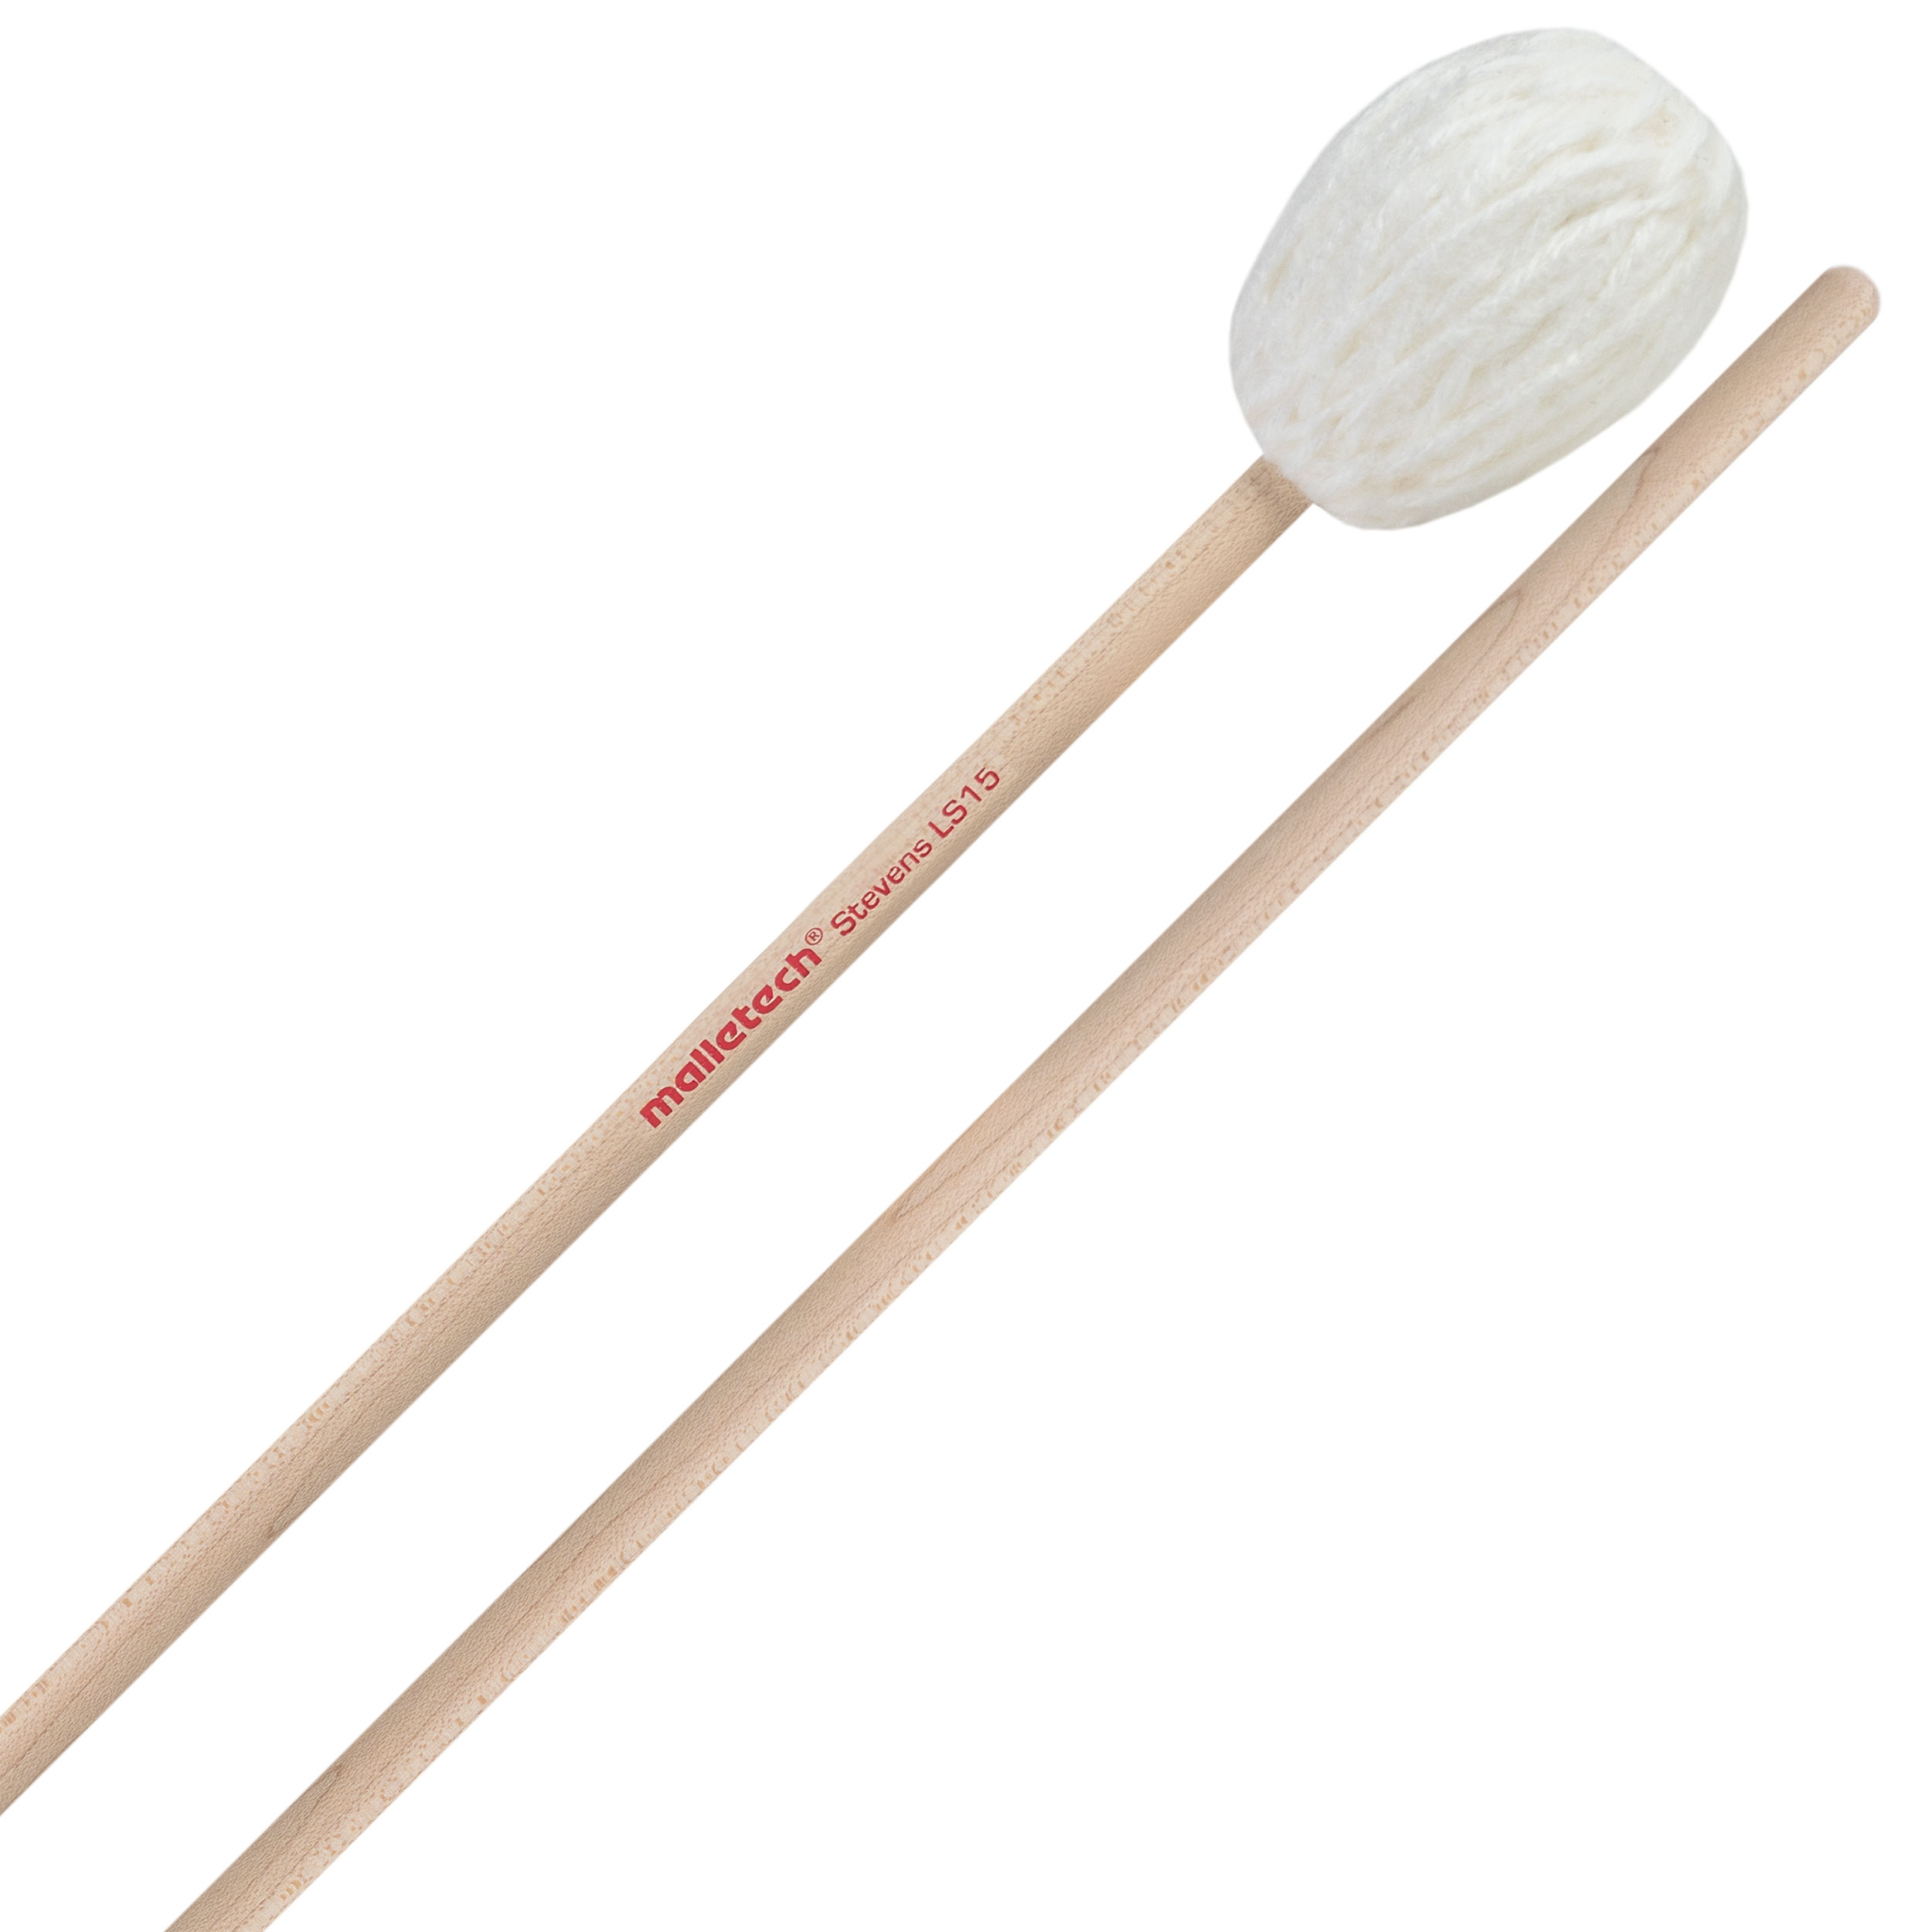 Malletech Leigh Howard Stevens Signature Medium Soft to Hard Marimba Mallets